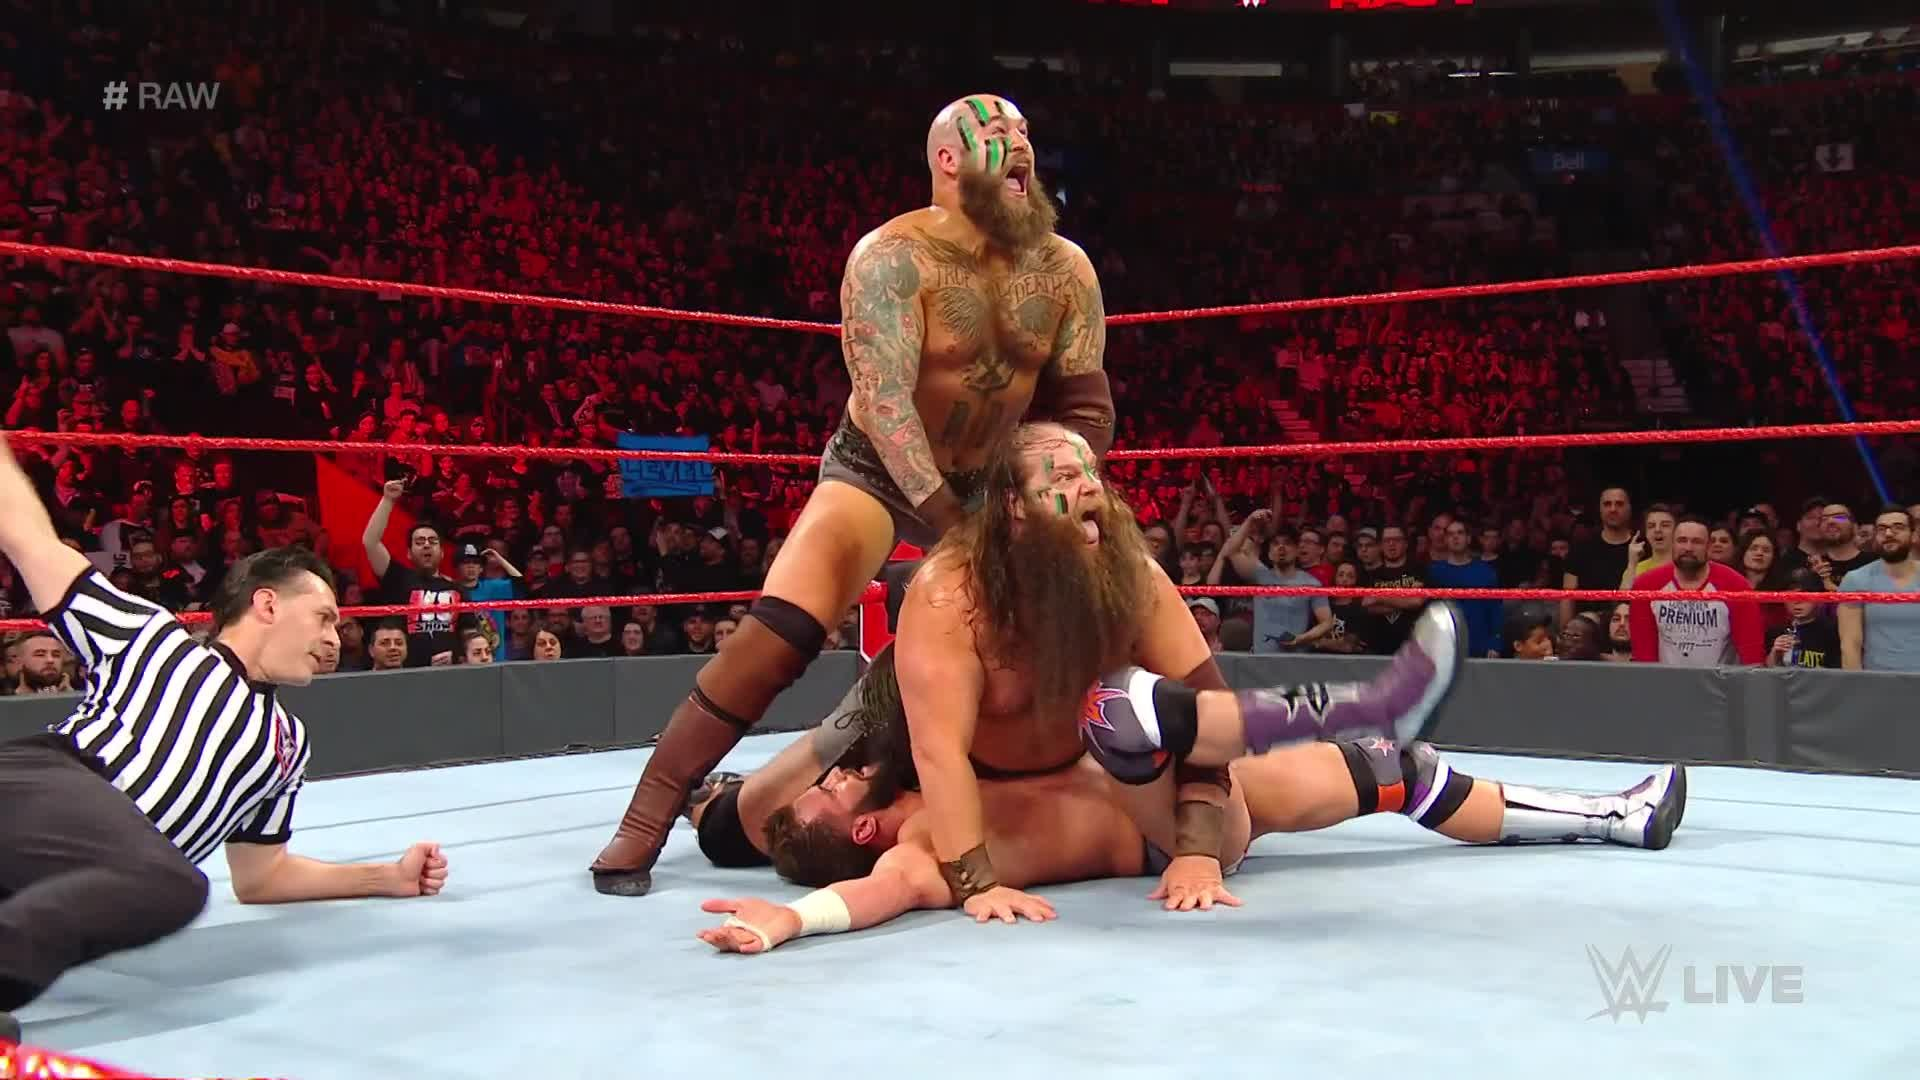 Zack Ryder, Curt Hawkins, Aleister Black & Ricochet vs. The Revival & The Viking Experience: Raw, 15 Avril 2019